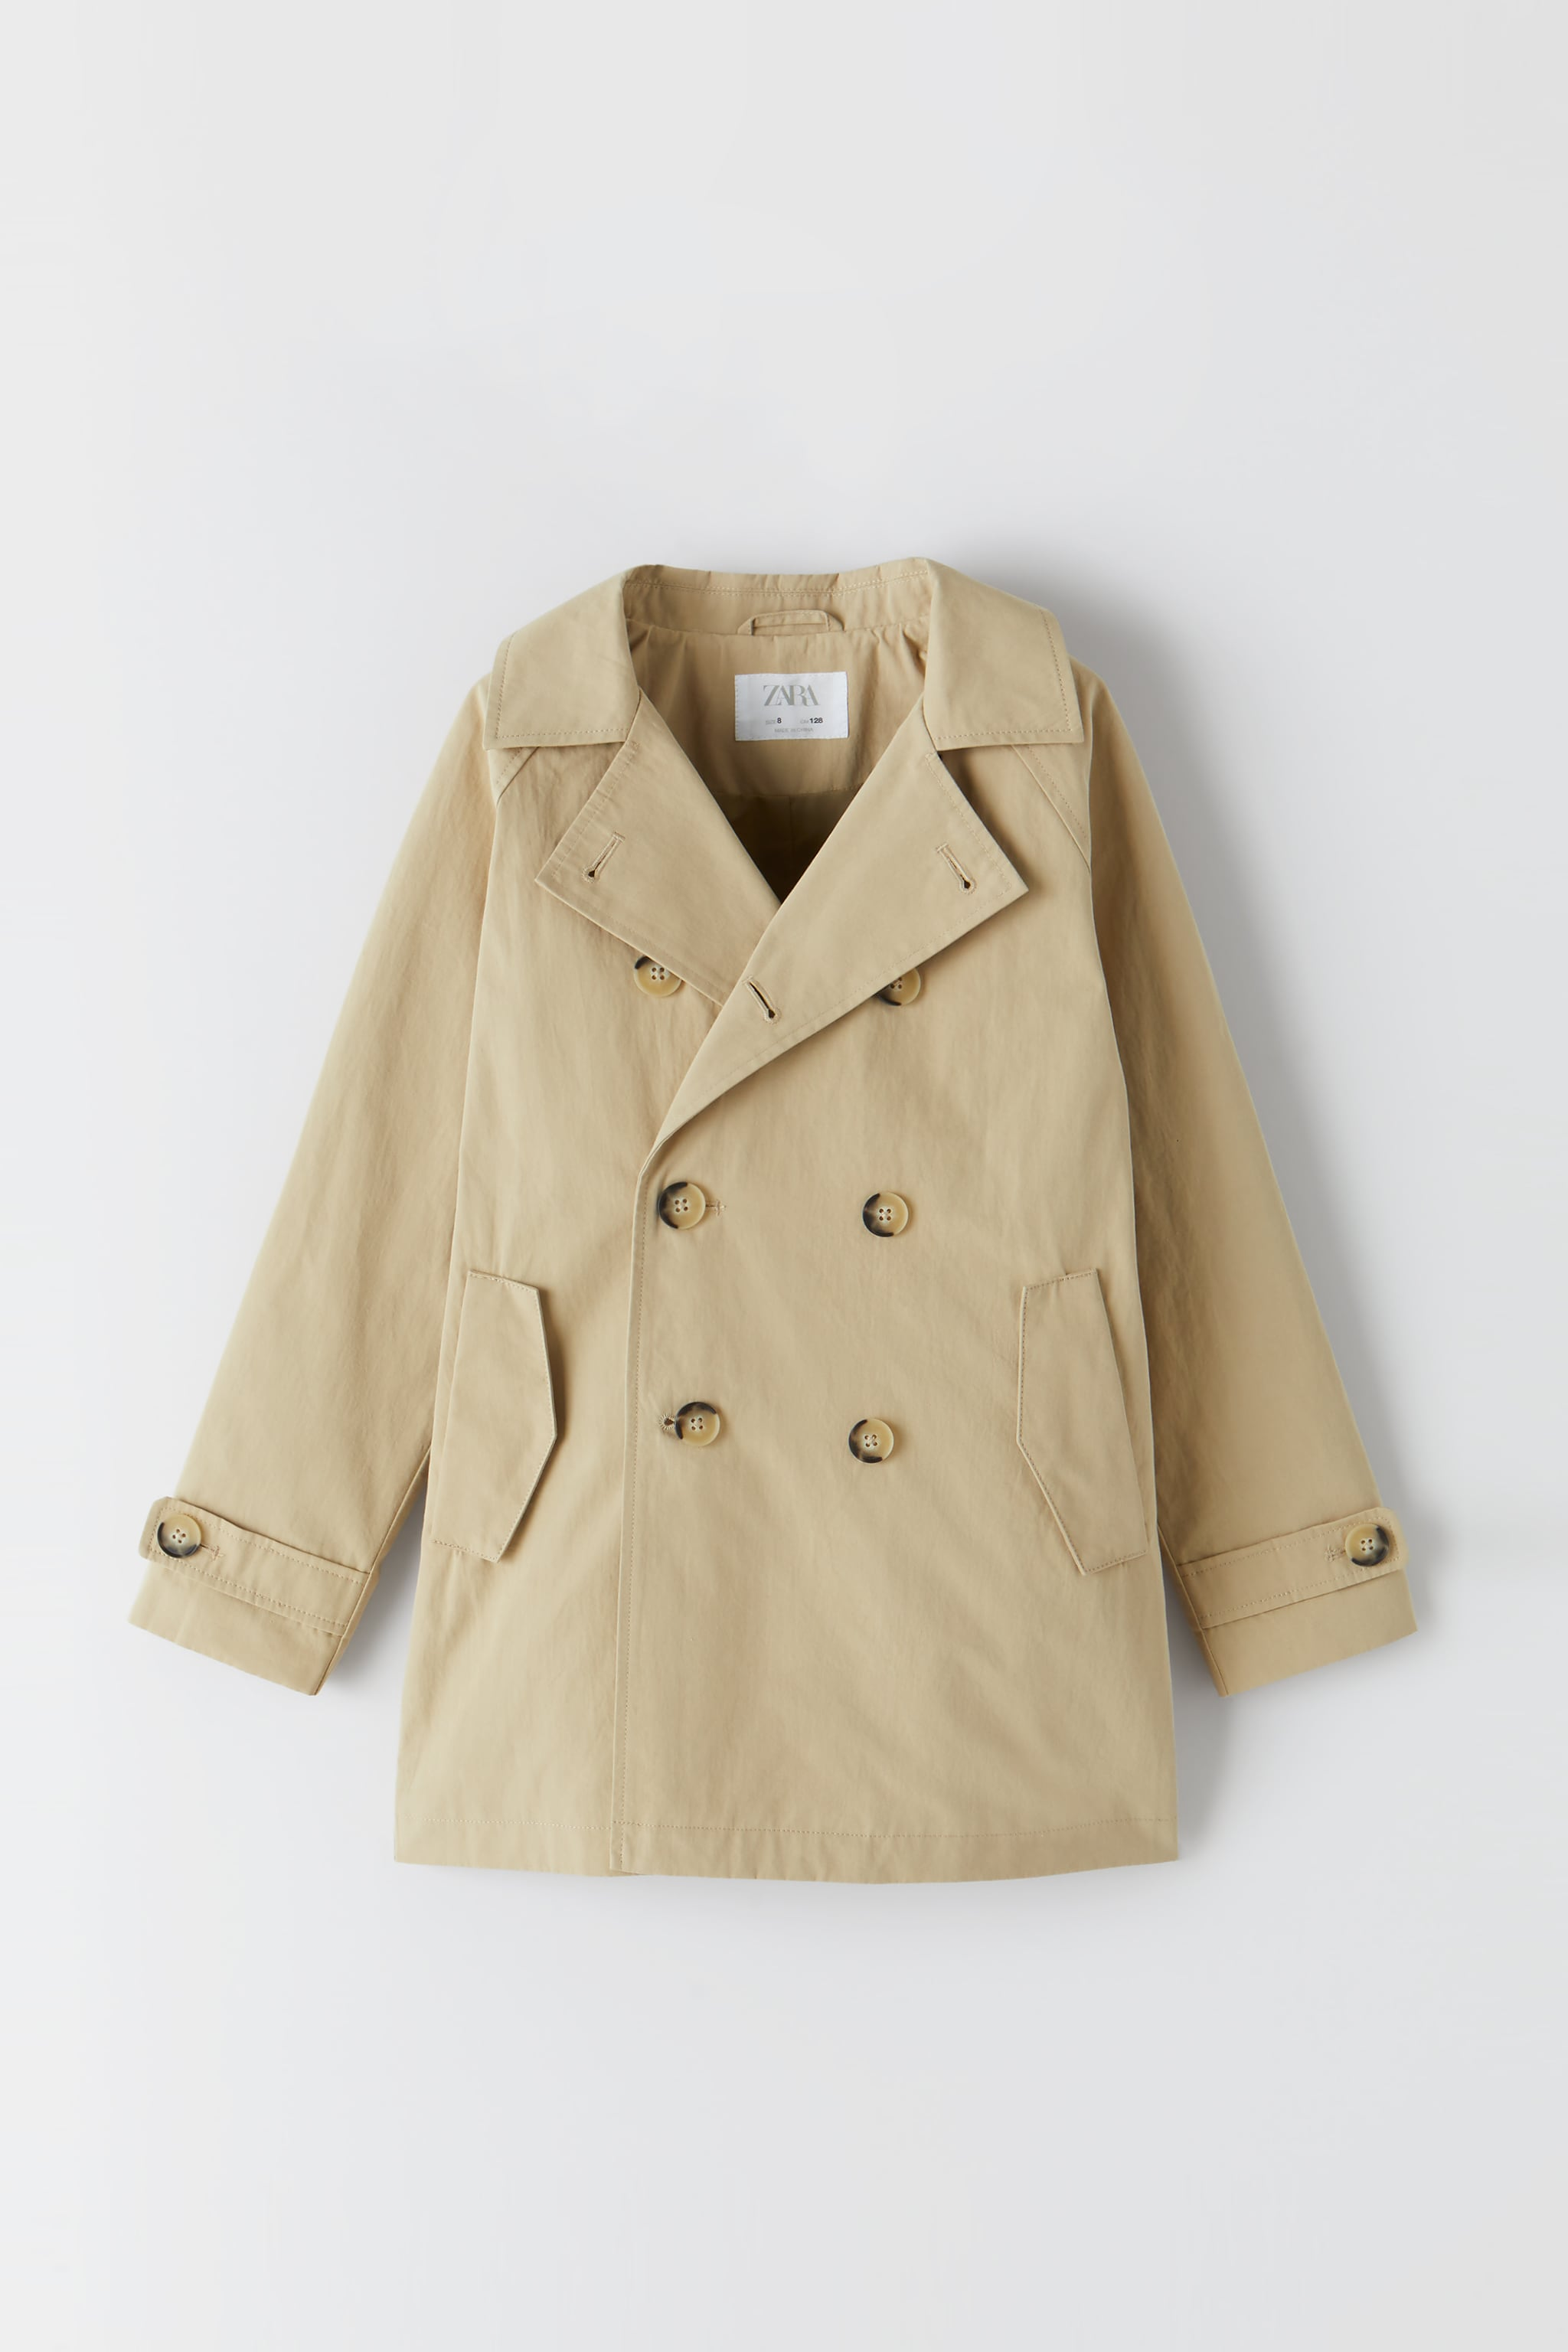 Zara DOUBLE BREASTED BUTTONED TRENCH COAT